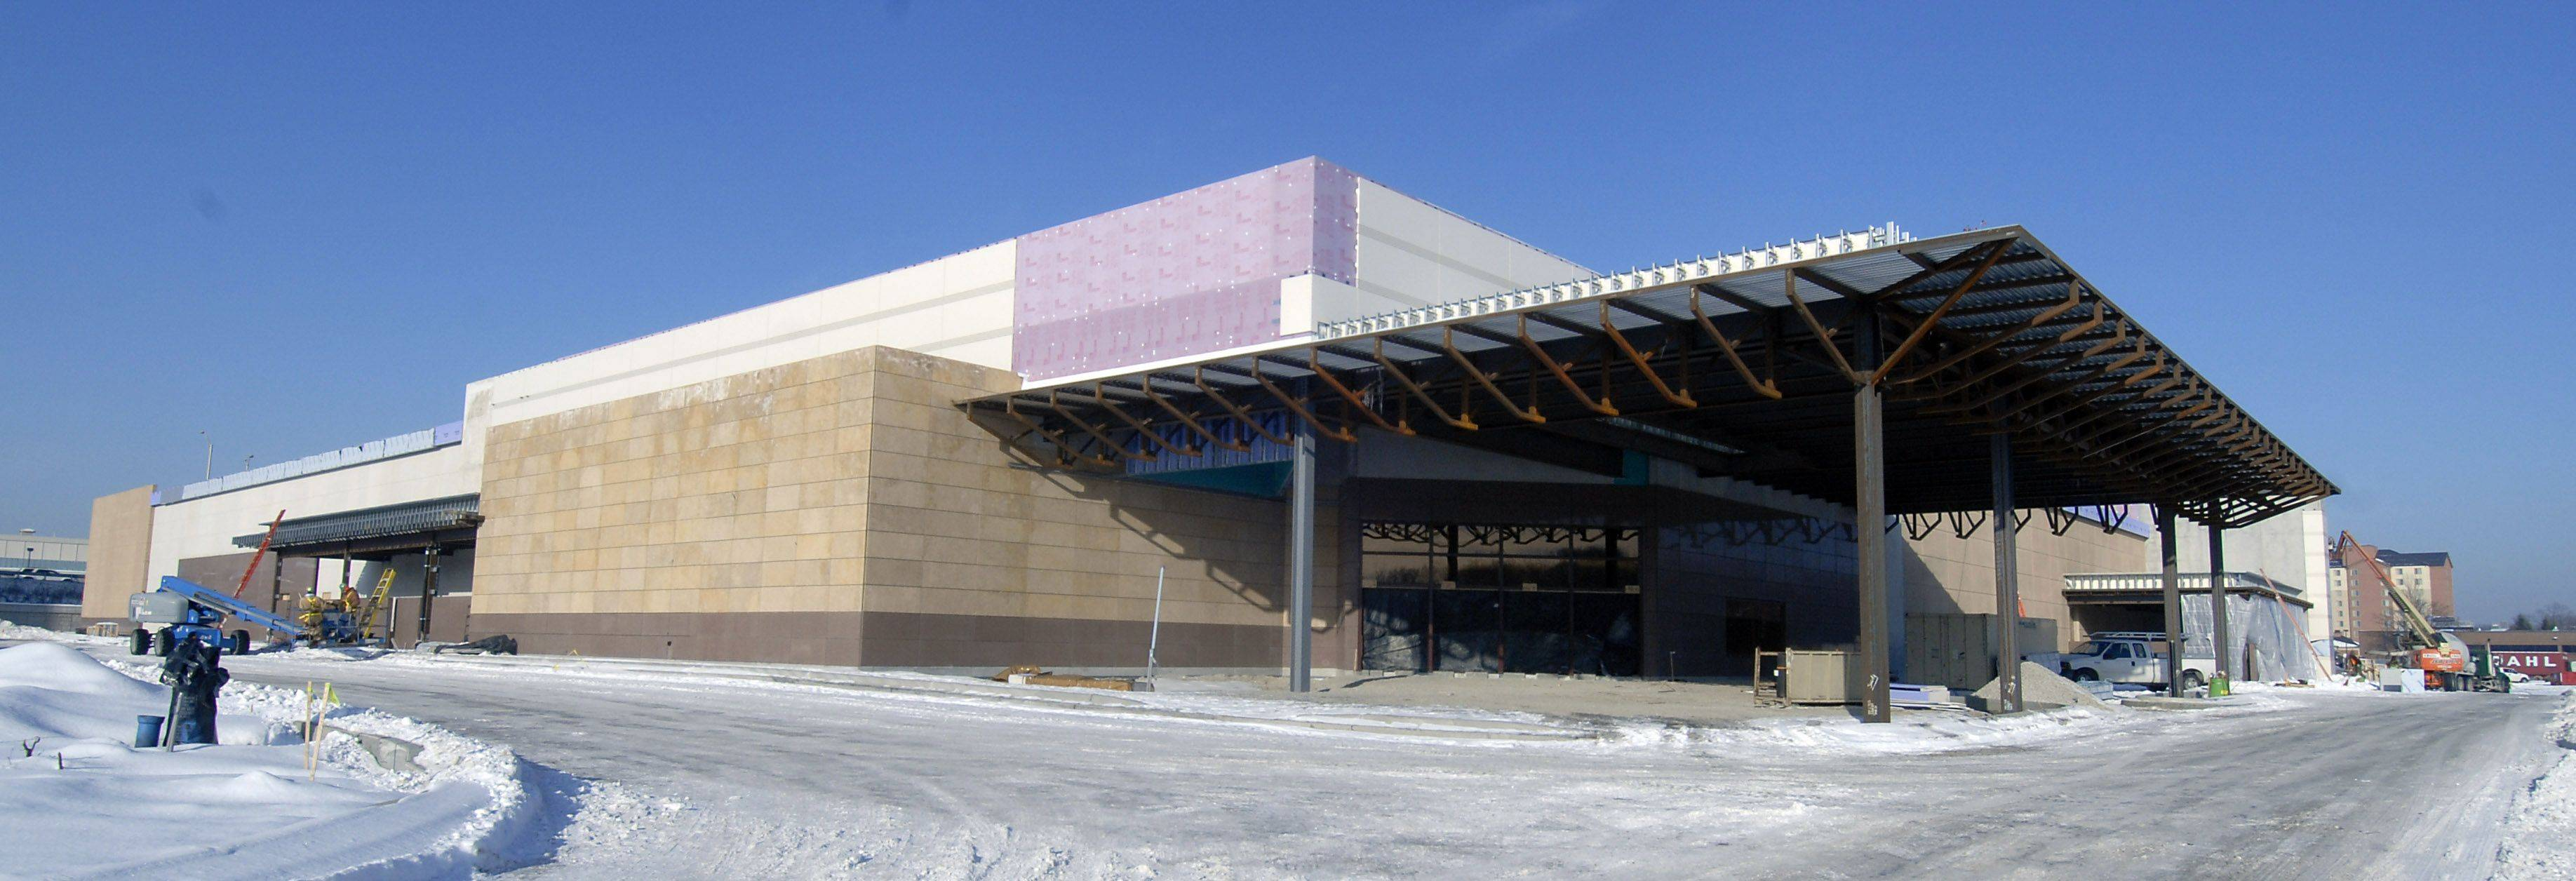 The facade of the Des Plaines casino will soon see the many patrons lining up to have a little fun.